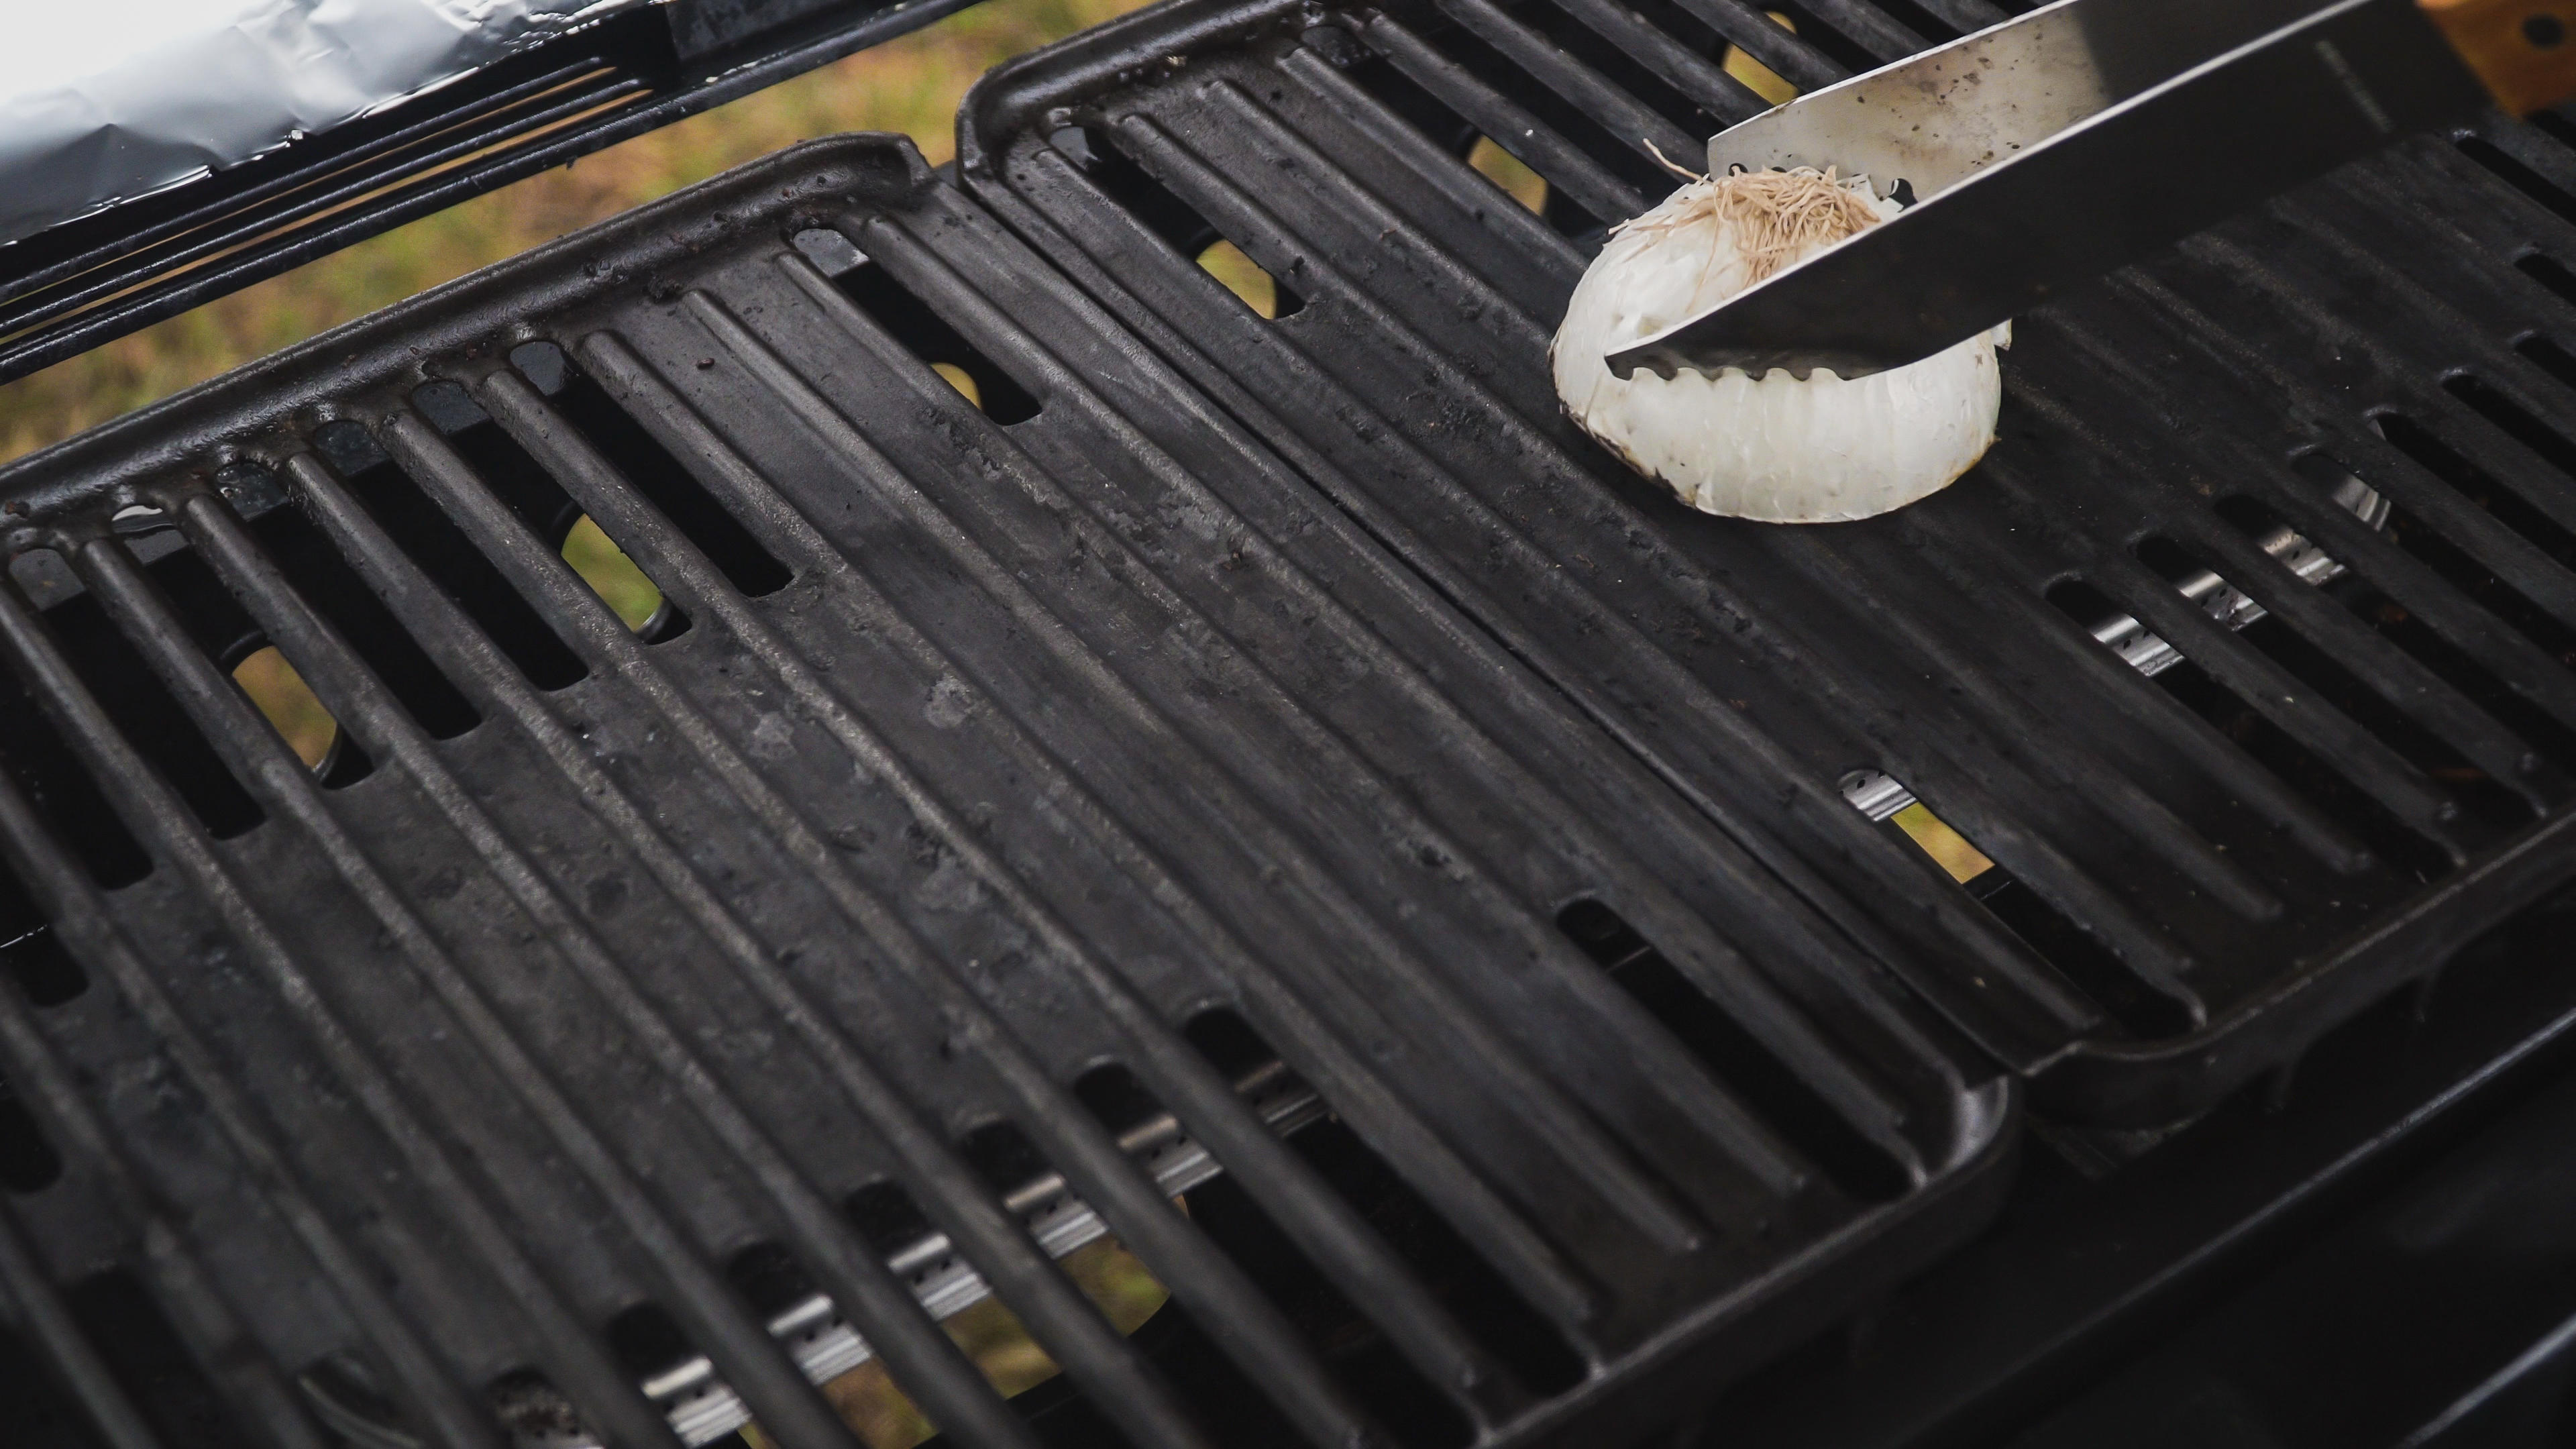 clean-grill-onion